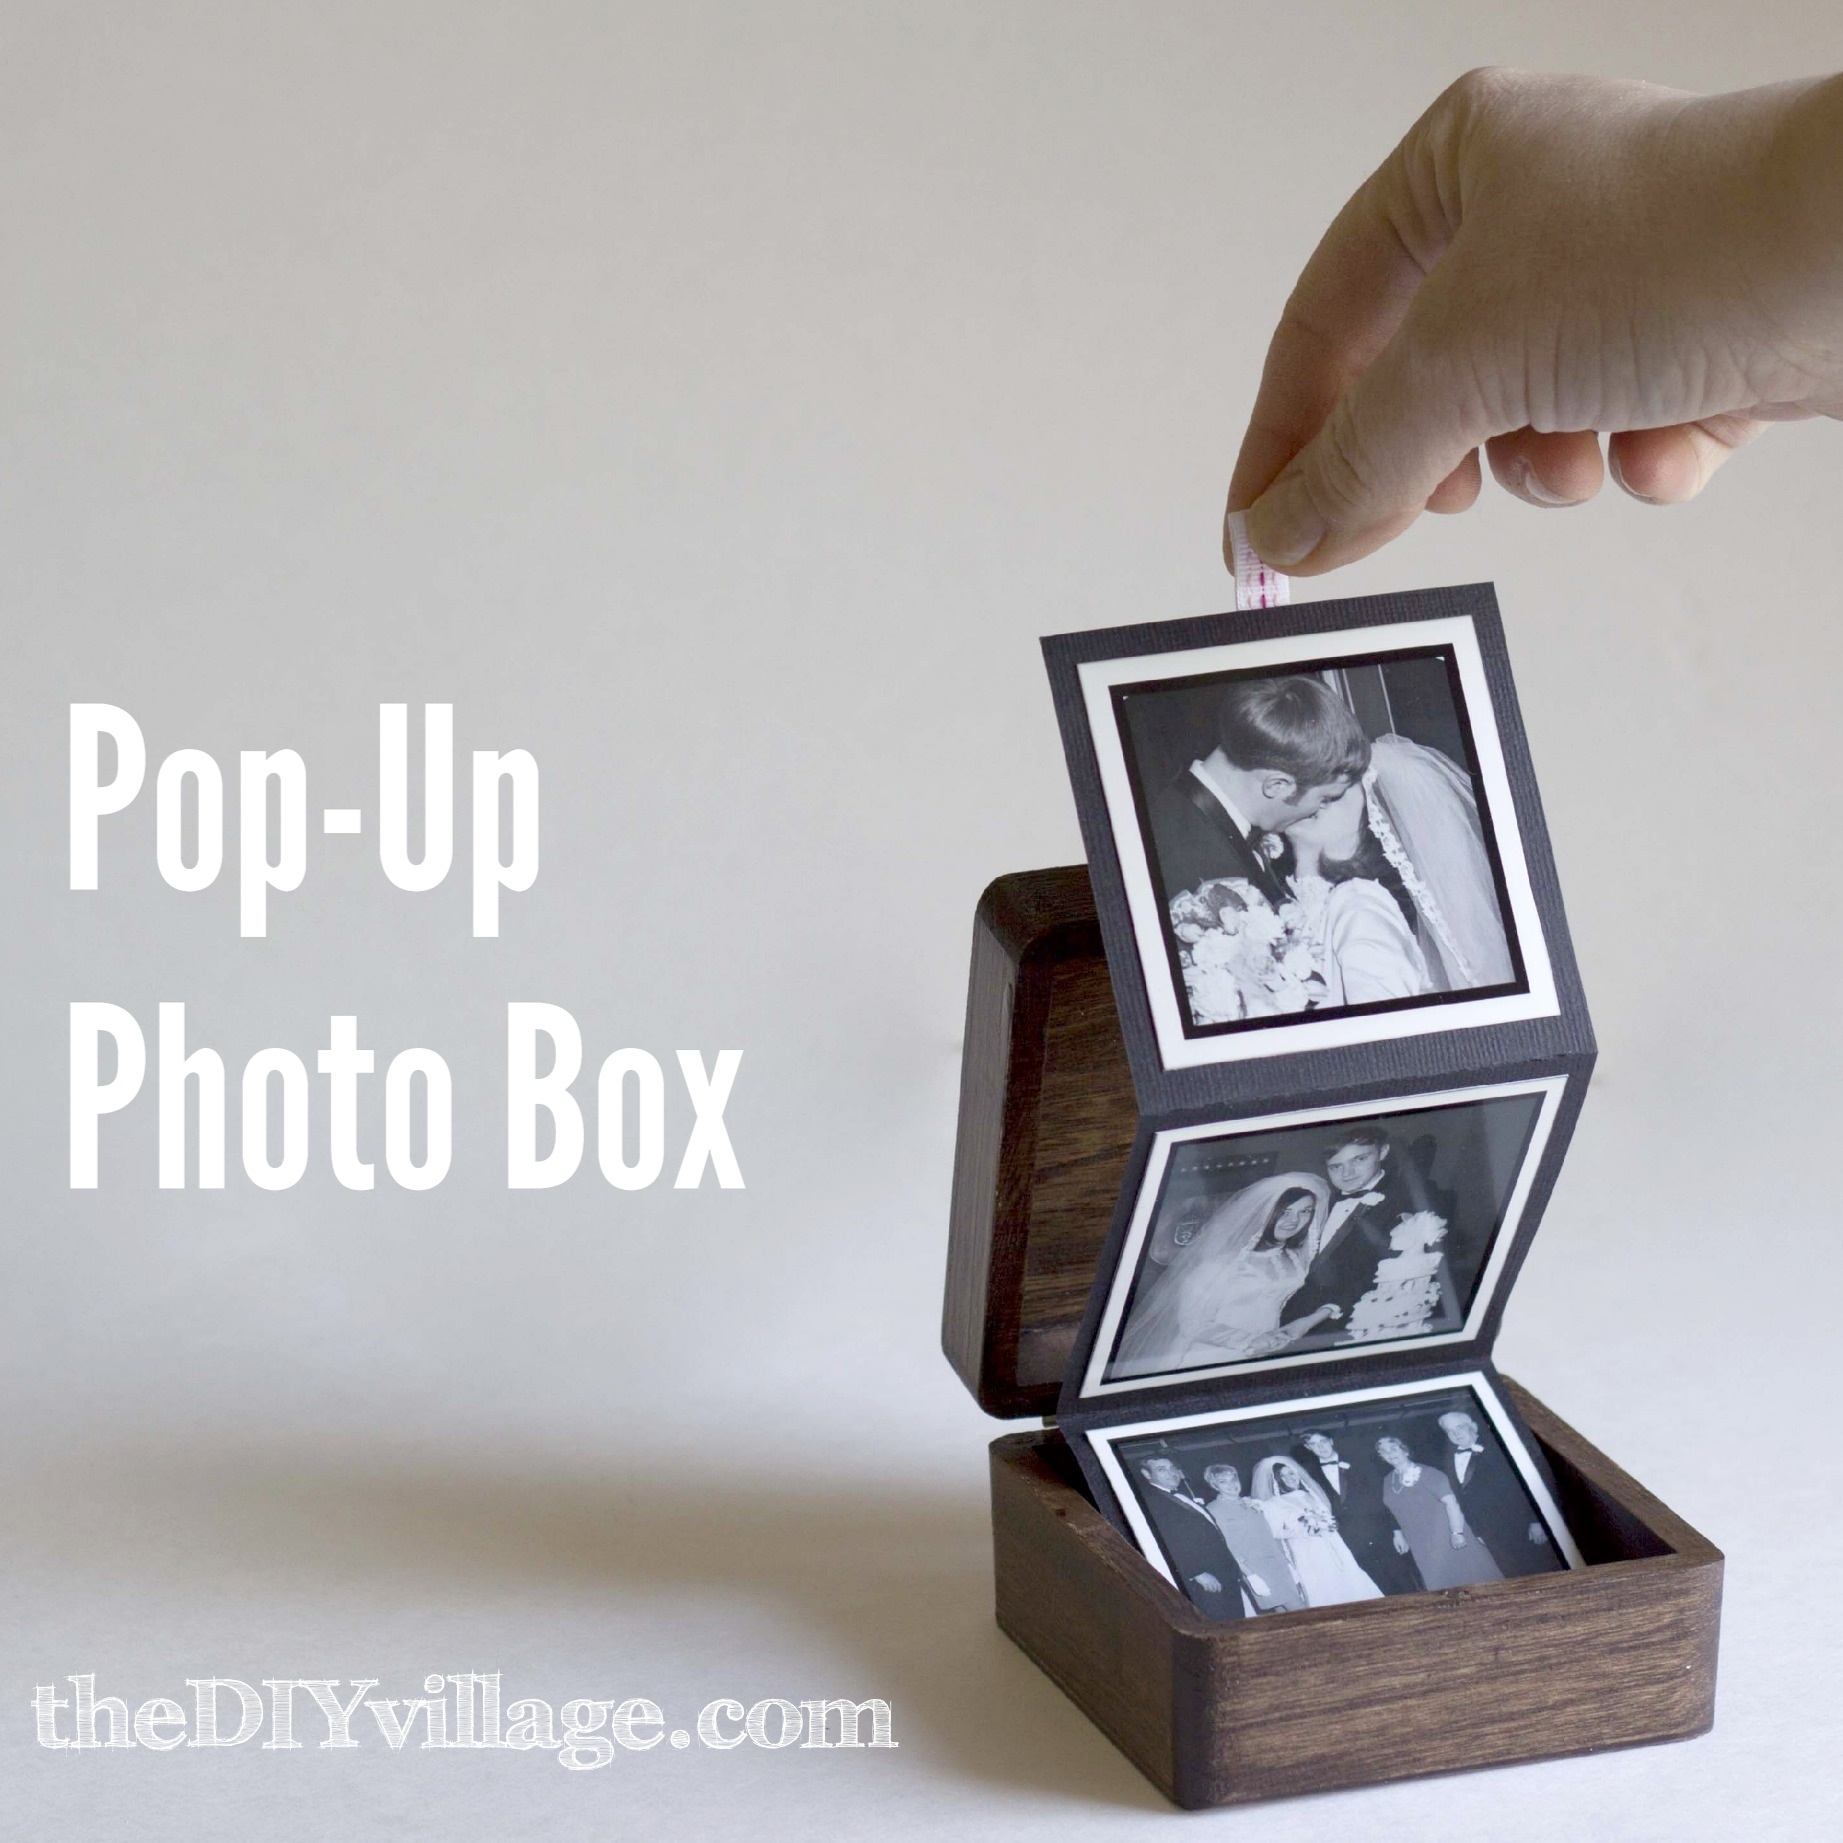 Top 10 Diy Projects Of 2013 The Diy Village